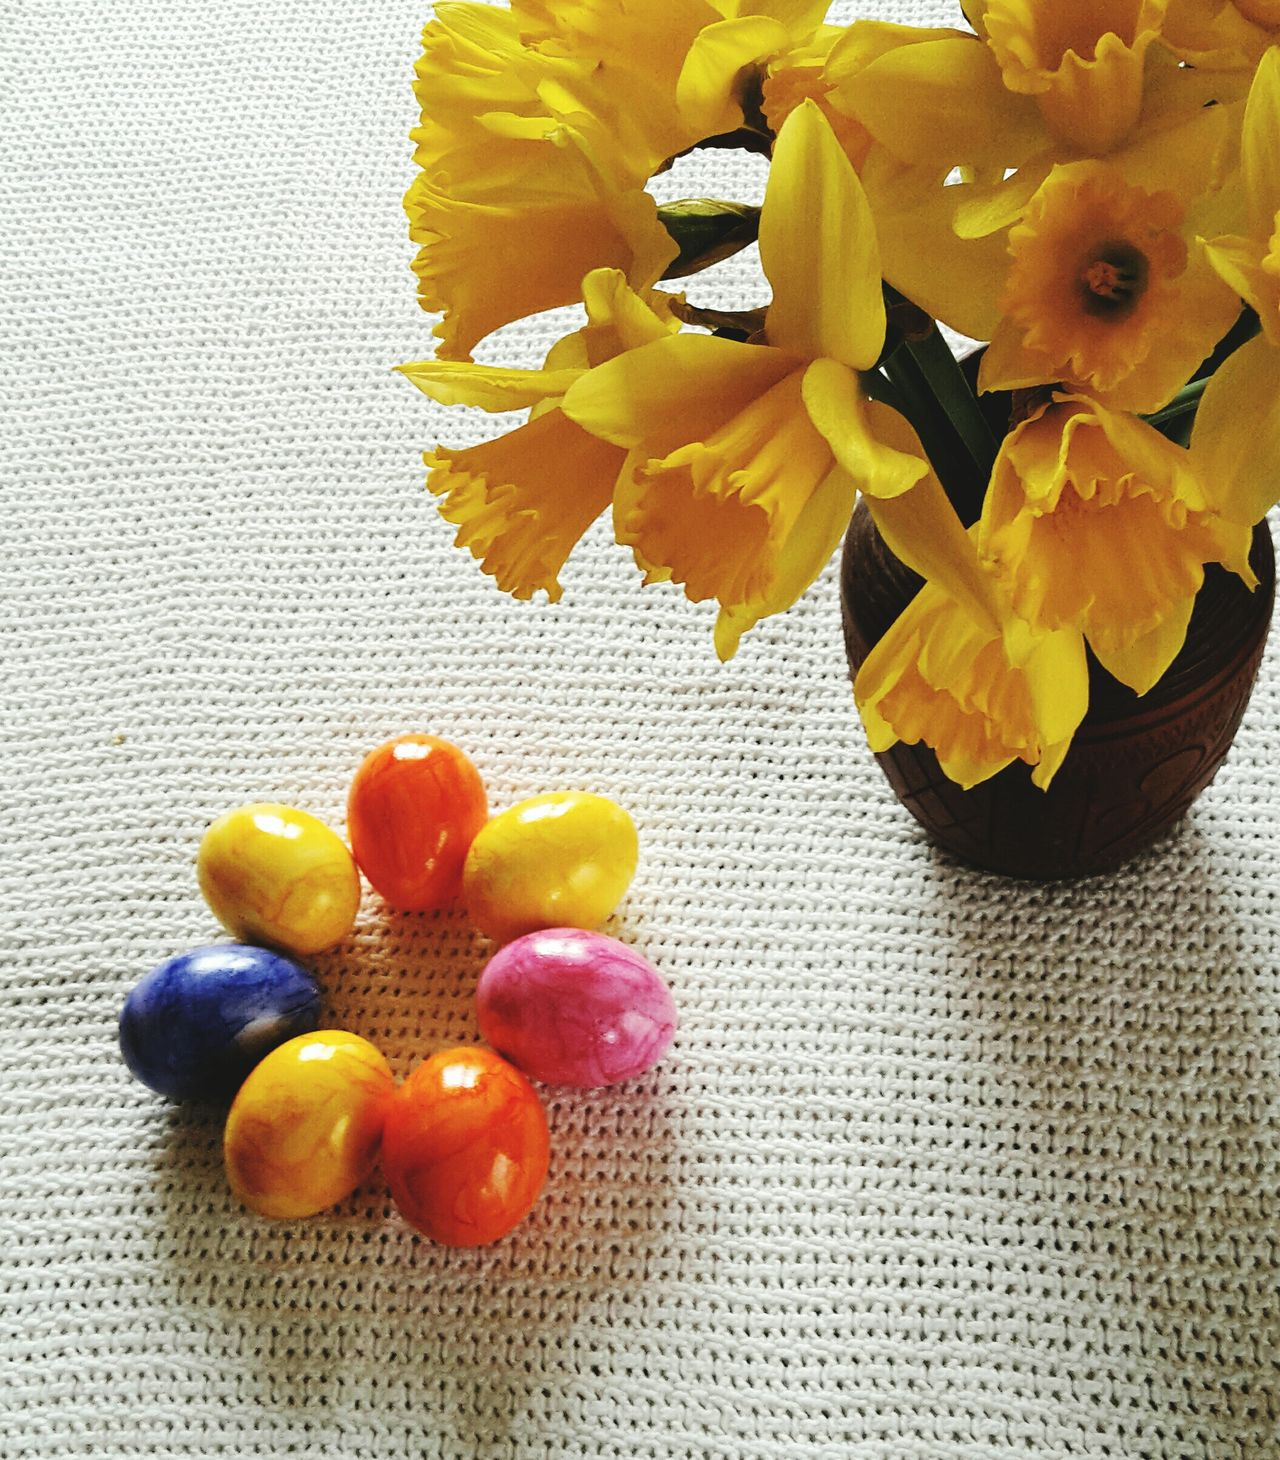 Happy Easter Yellow Freshness Close-up No People Indoors  Day Easter Easter Eggs Easter Ready Colors Colorful Colored Eggs Daffodils Yellow Decoration Celebration Springtime Spring Flowers